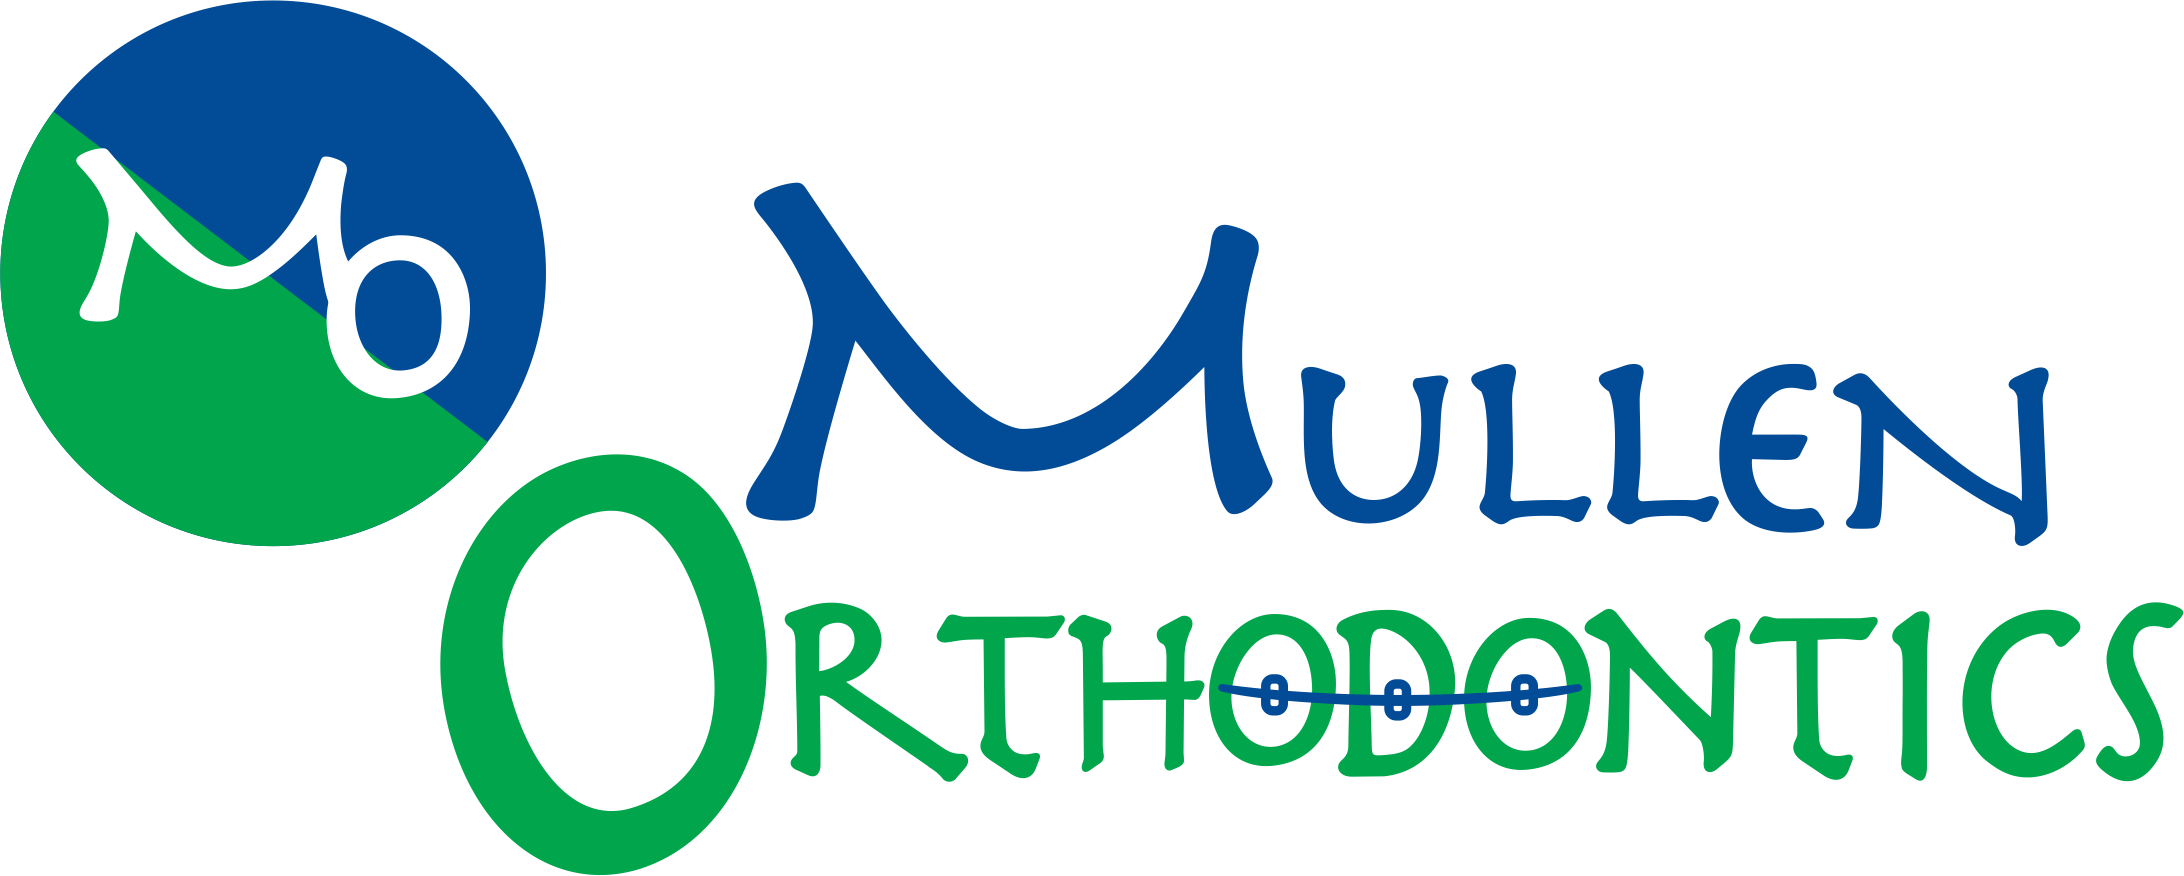 Mullen Orthodontics